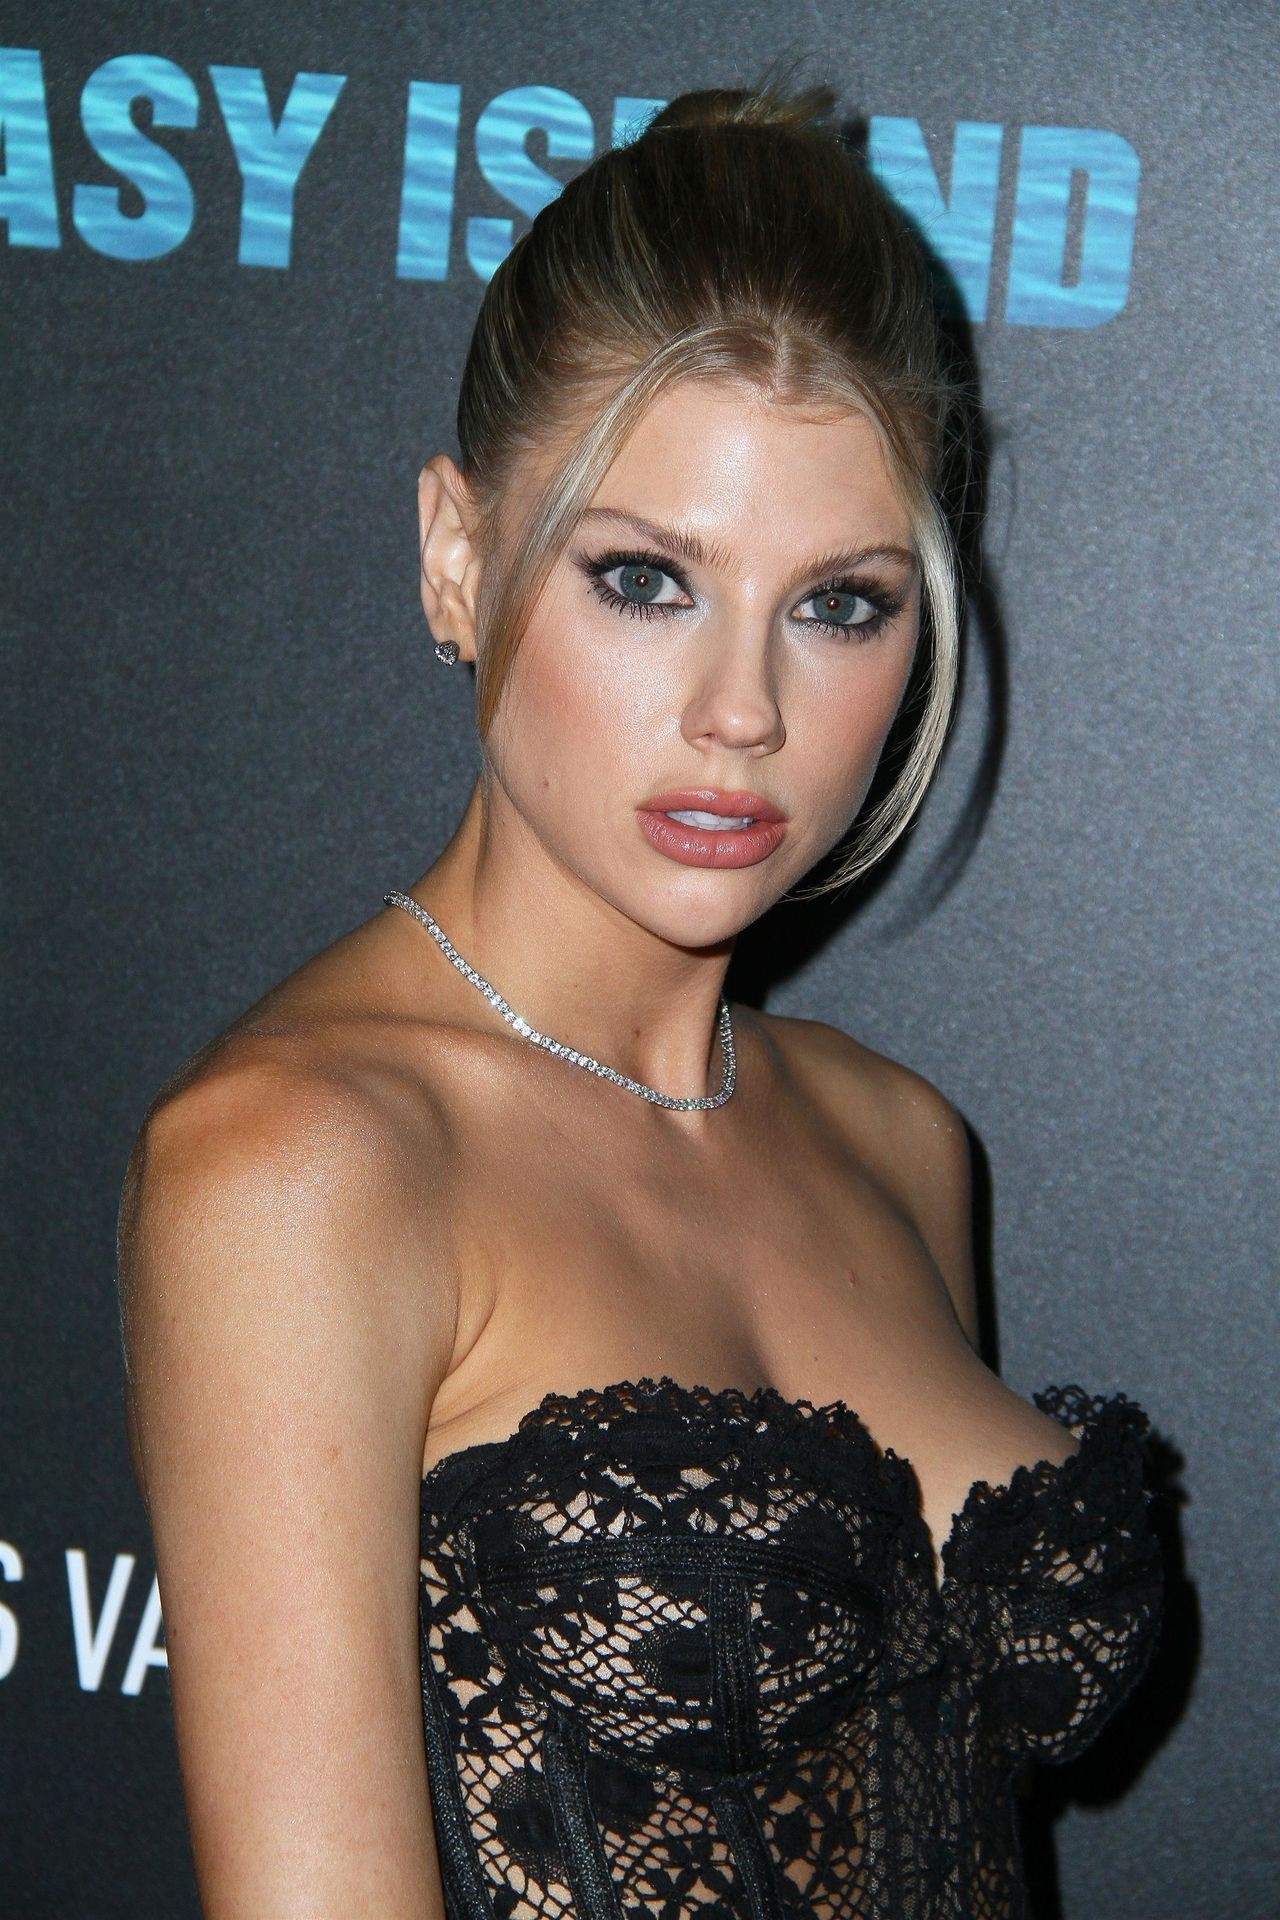 Charlotte McKinney - Big Boobs in Sexy CLeavage at